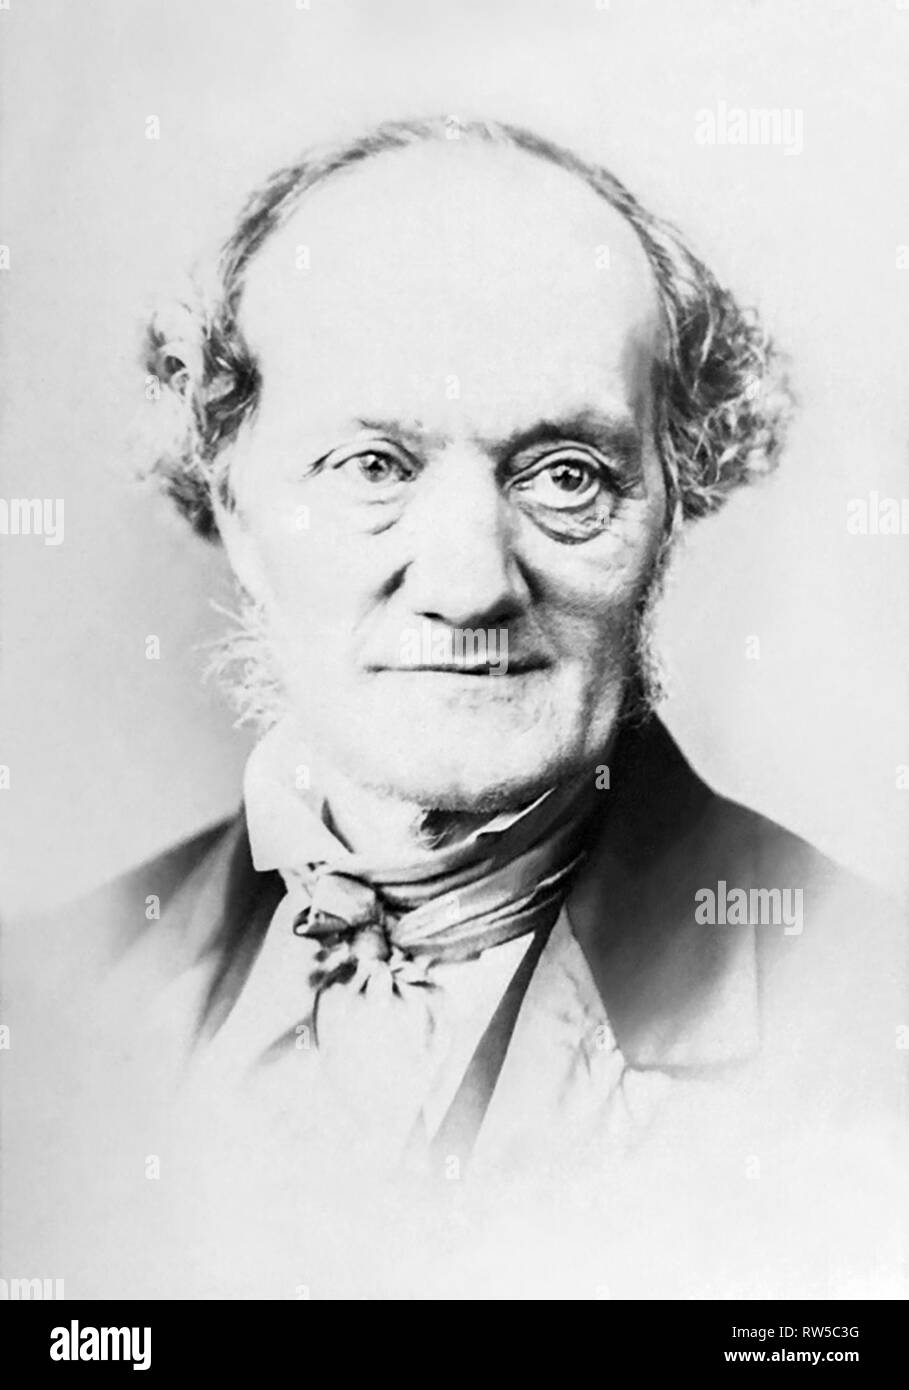 Sir Richard Owen KCB FRS (1804-1892) in an 1860s portrait by Elliott & Fry. Owen was an English biologist, comparative anatomist, and paleontologist who coined the term dinosauria, from which we derive the word dinosaur. He was also an outspoken critic of Charles Darwin's theory of evolution by natural selection. - Stock Image